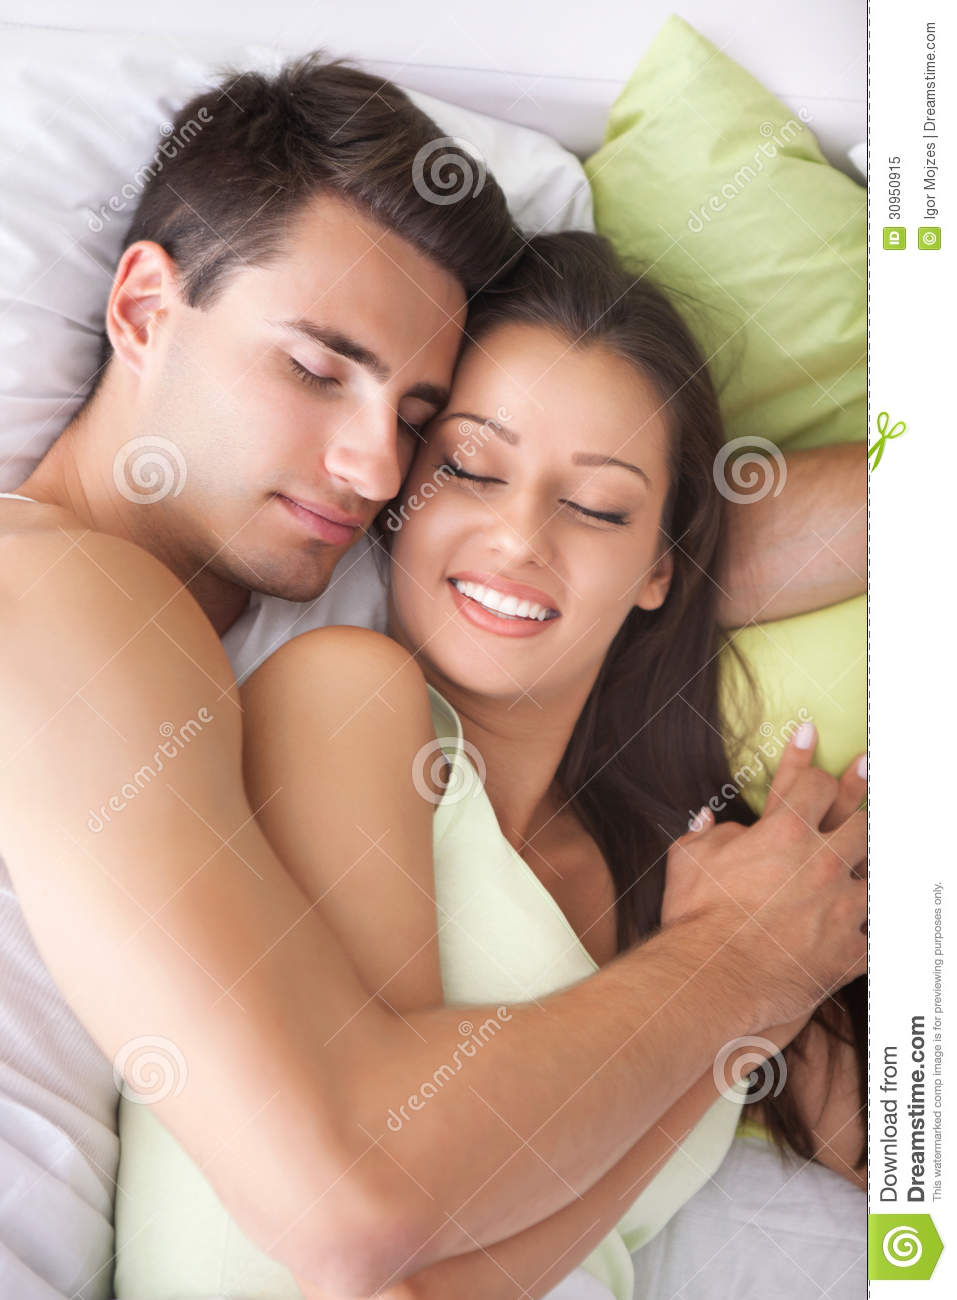 Young couple sleeping and hugging on the bed in bedroom.